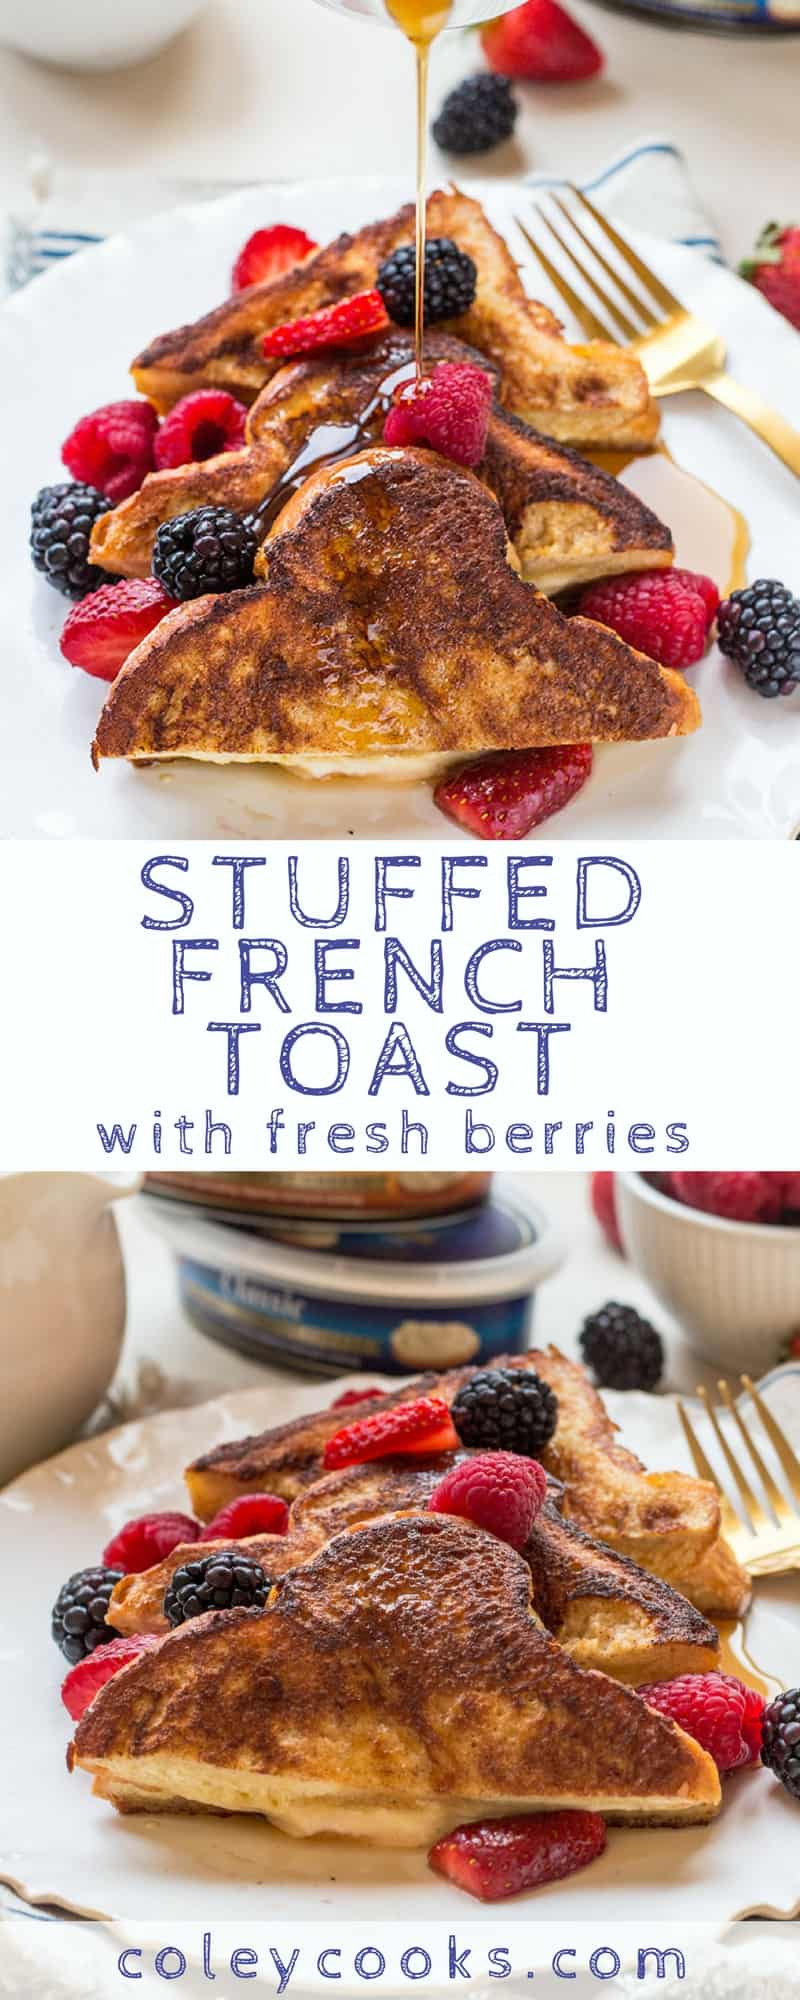 STUFFED FRENCH TOAST | Easy + delicious cream cheese stuffed French toast recipe served with fresh berries and pure maple syrup. The best breakfast or brunch! | ColeyCooks.com